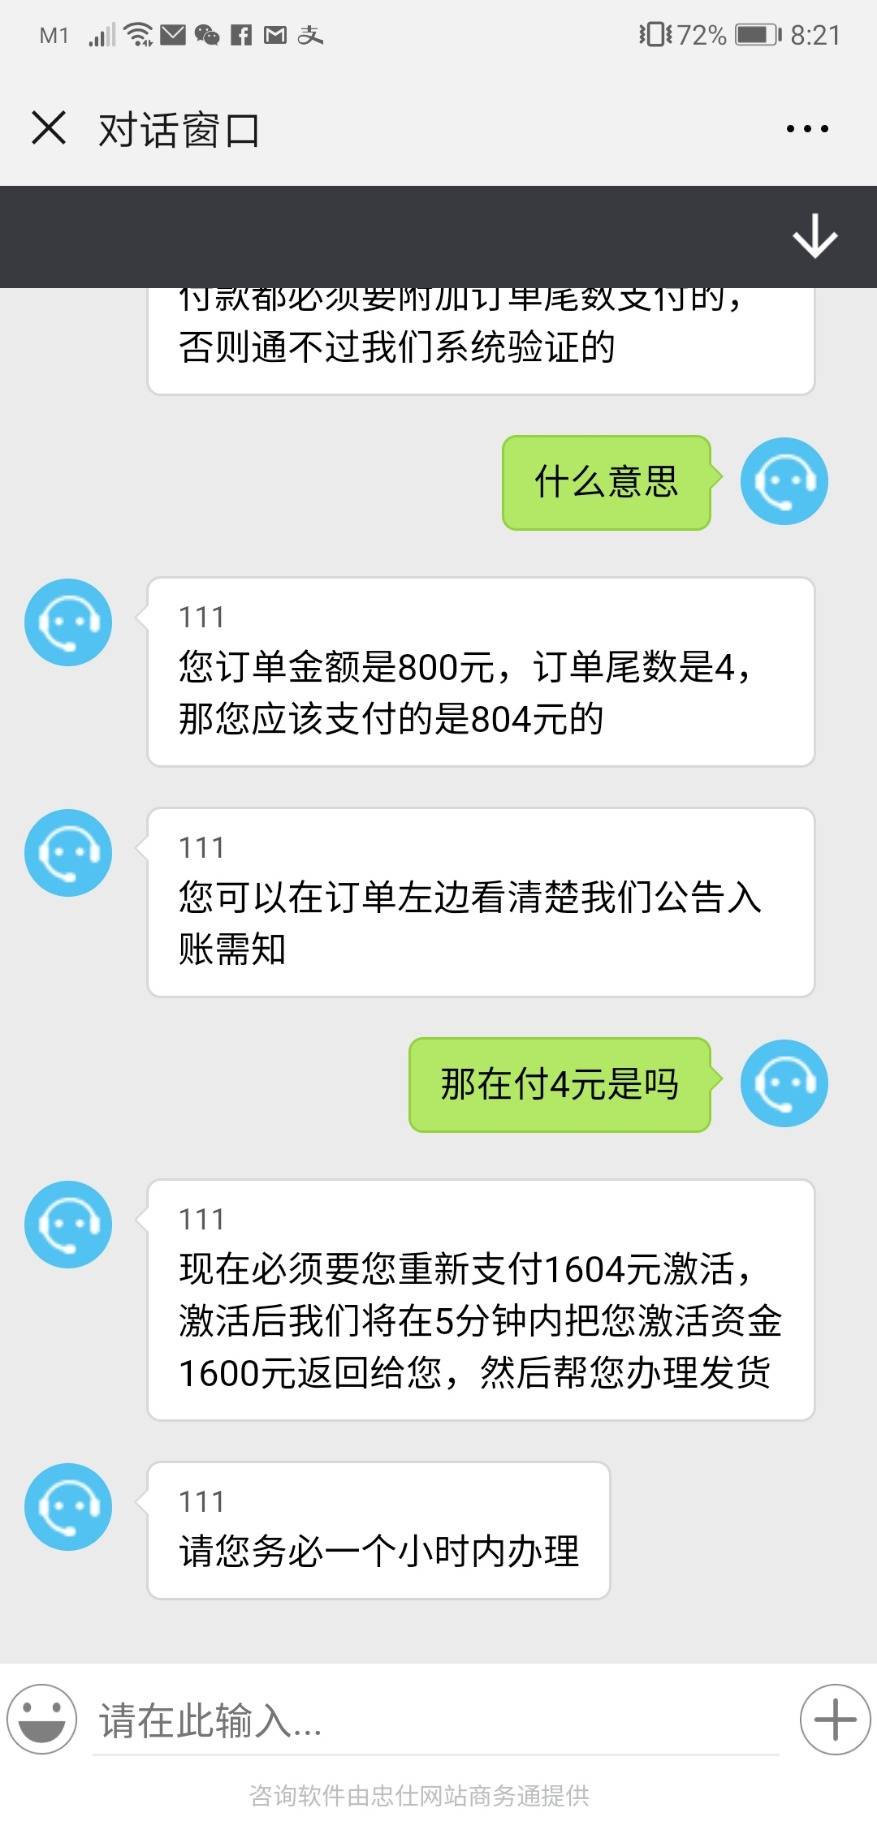 Screenshot_20190118_202155_com.tencent.mm.jpg